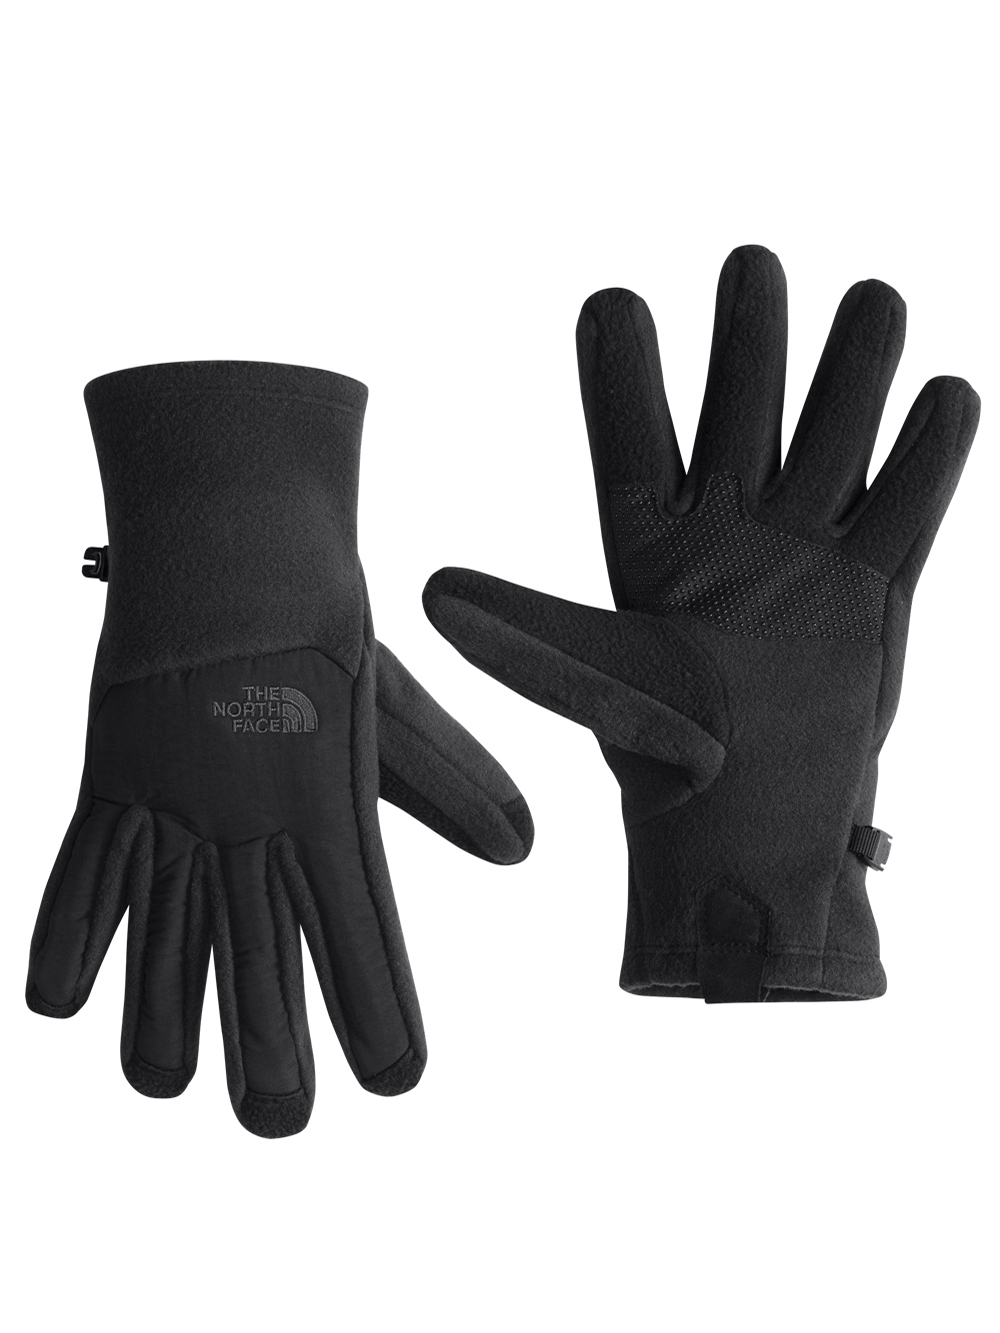 The North Face Men's Denali Etip Gloves (Sizes S - XL) - black, s